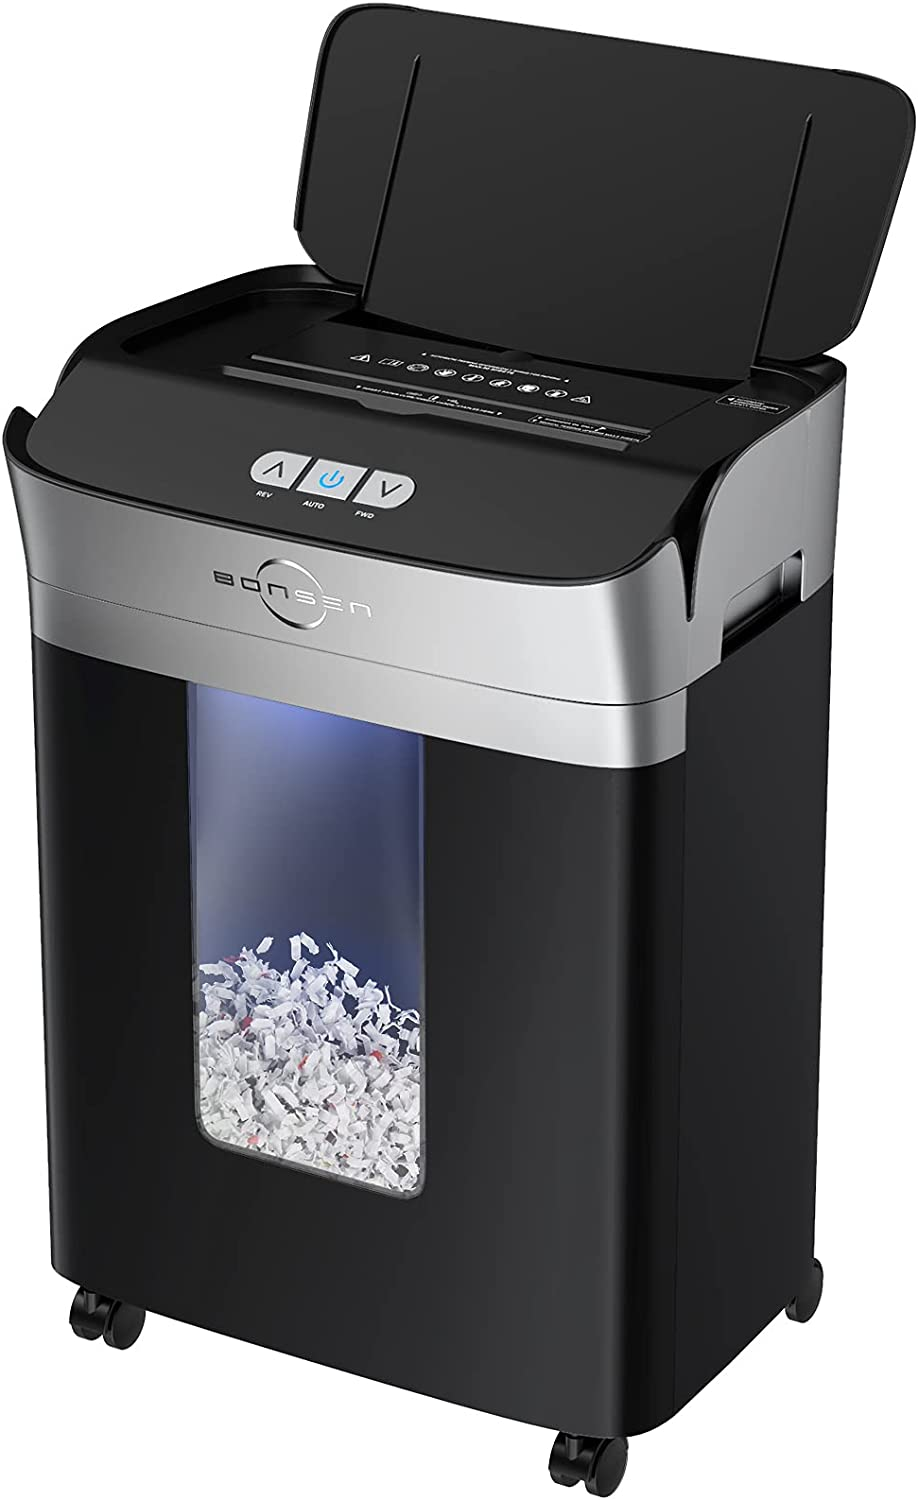 BONSEN Paper Shredder, 90-Sheet Automatic and Manual Micro-Cut Paper and Credit Card Shredder, High Security Level P-4 Shredder for Home Office with 5.3 Gallons Lighted Wastebasket, Black (S3109)